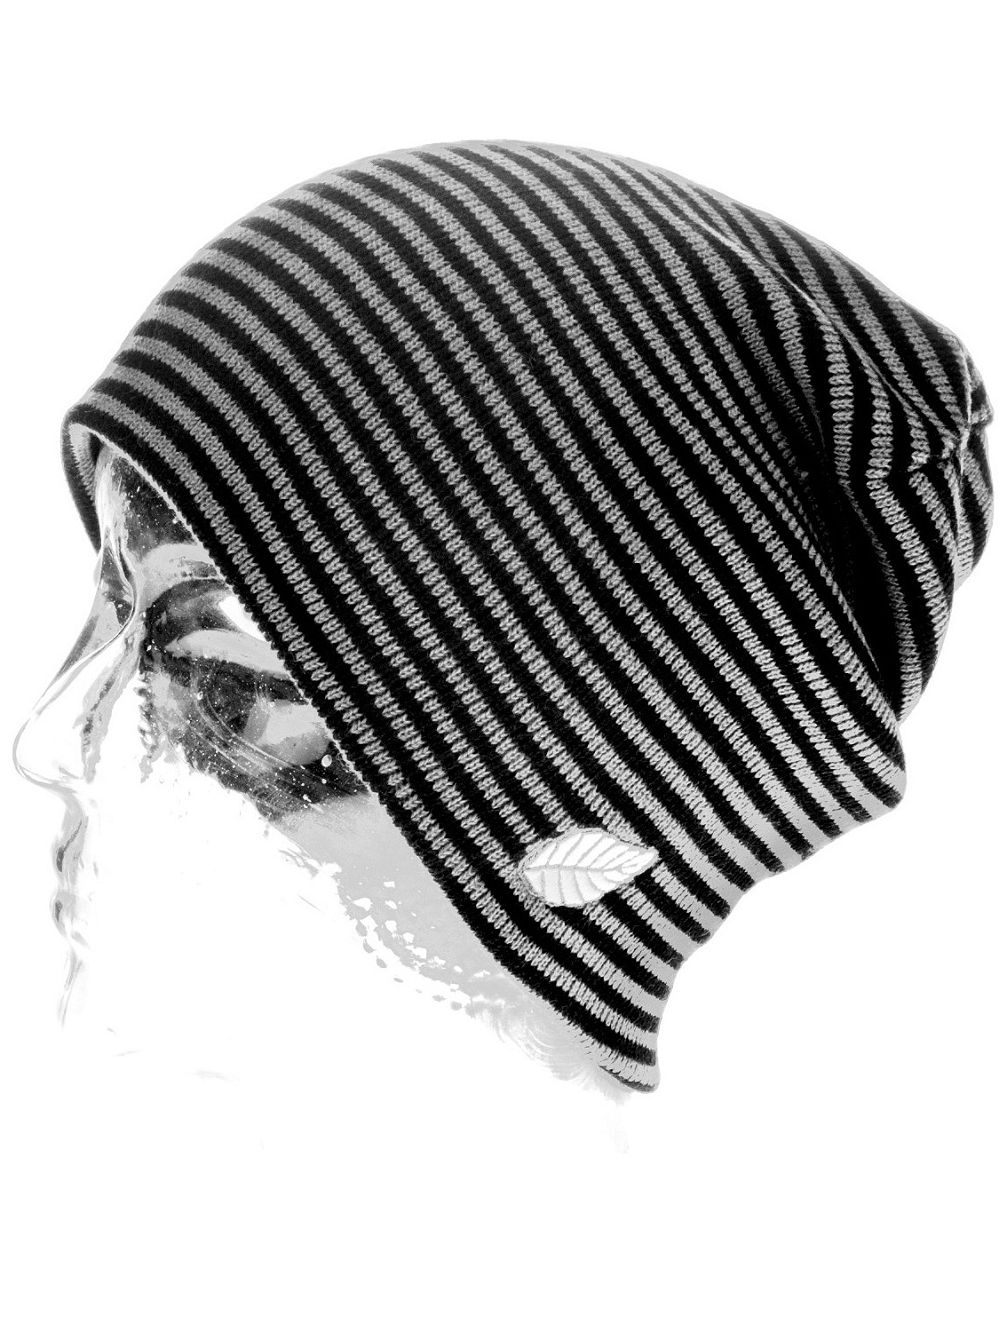 The Striped Reservoir Beanie